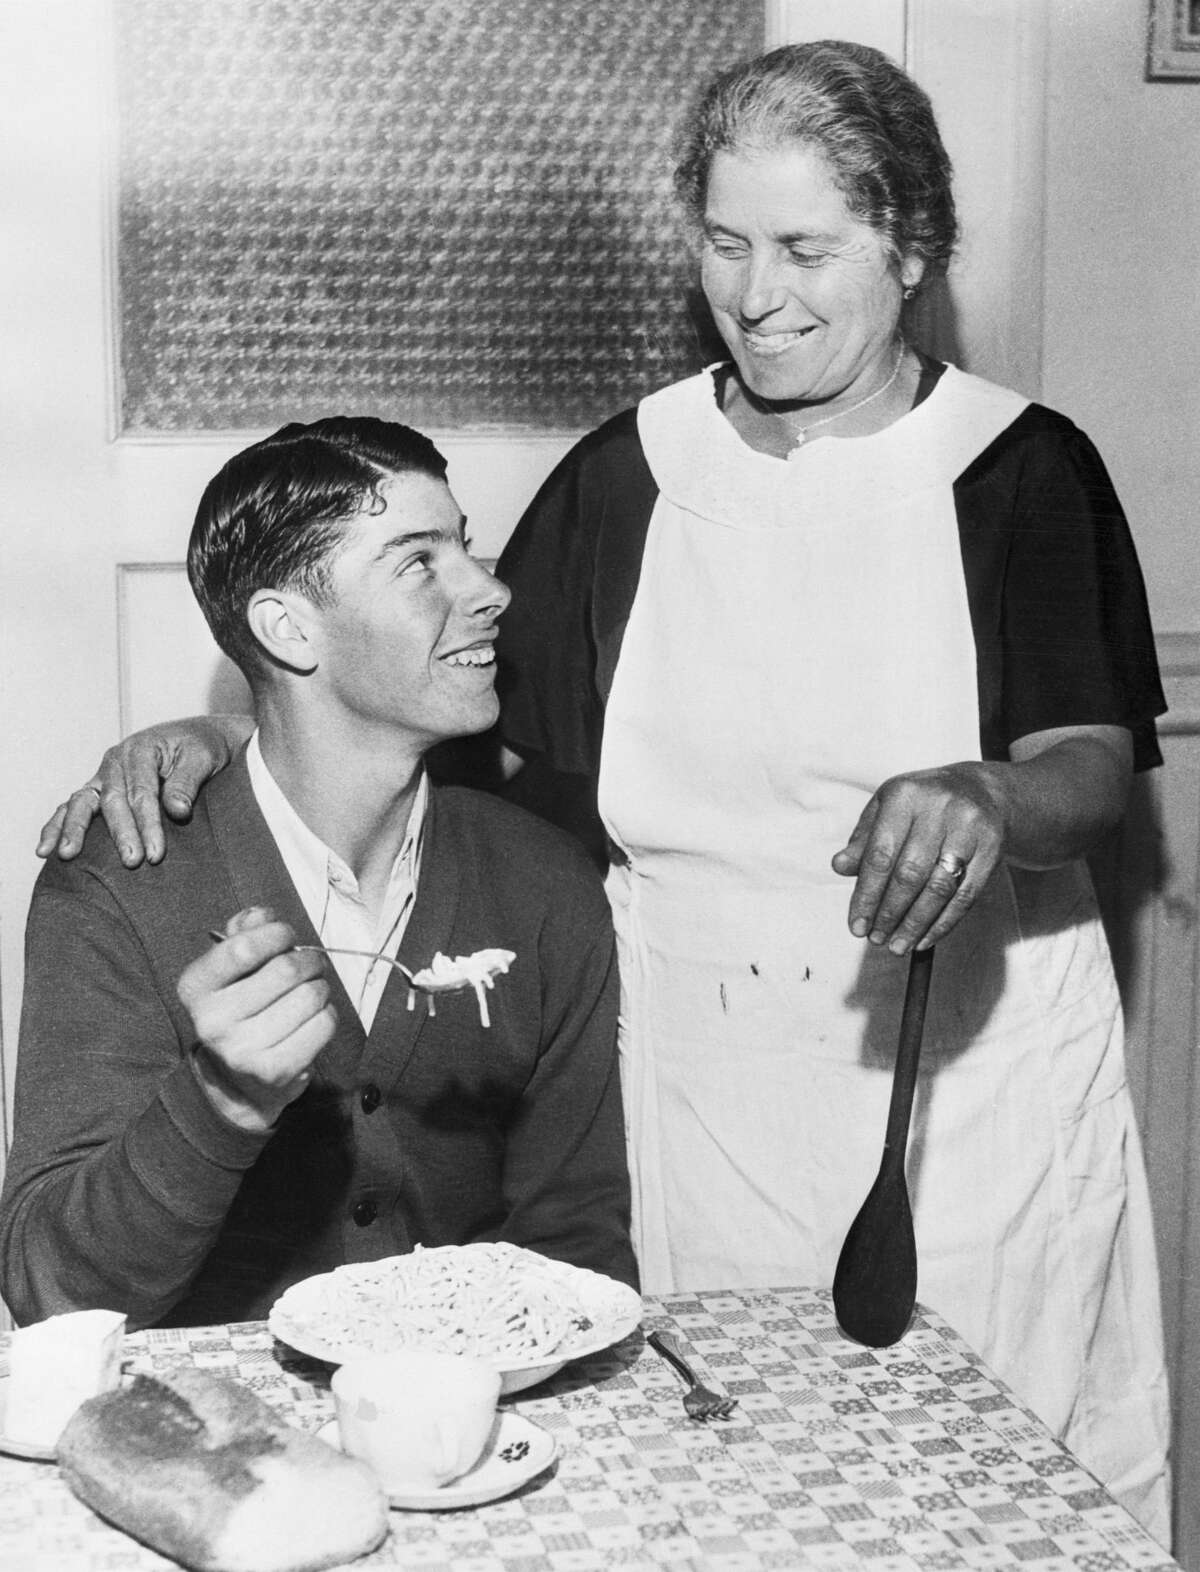 Young Joe DiMaggio eating spaghetti while his mother Rosalialooks on.